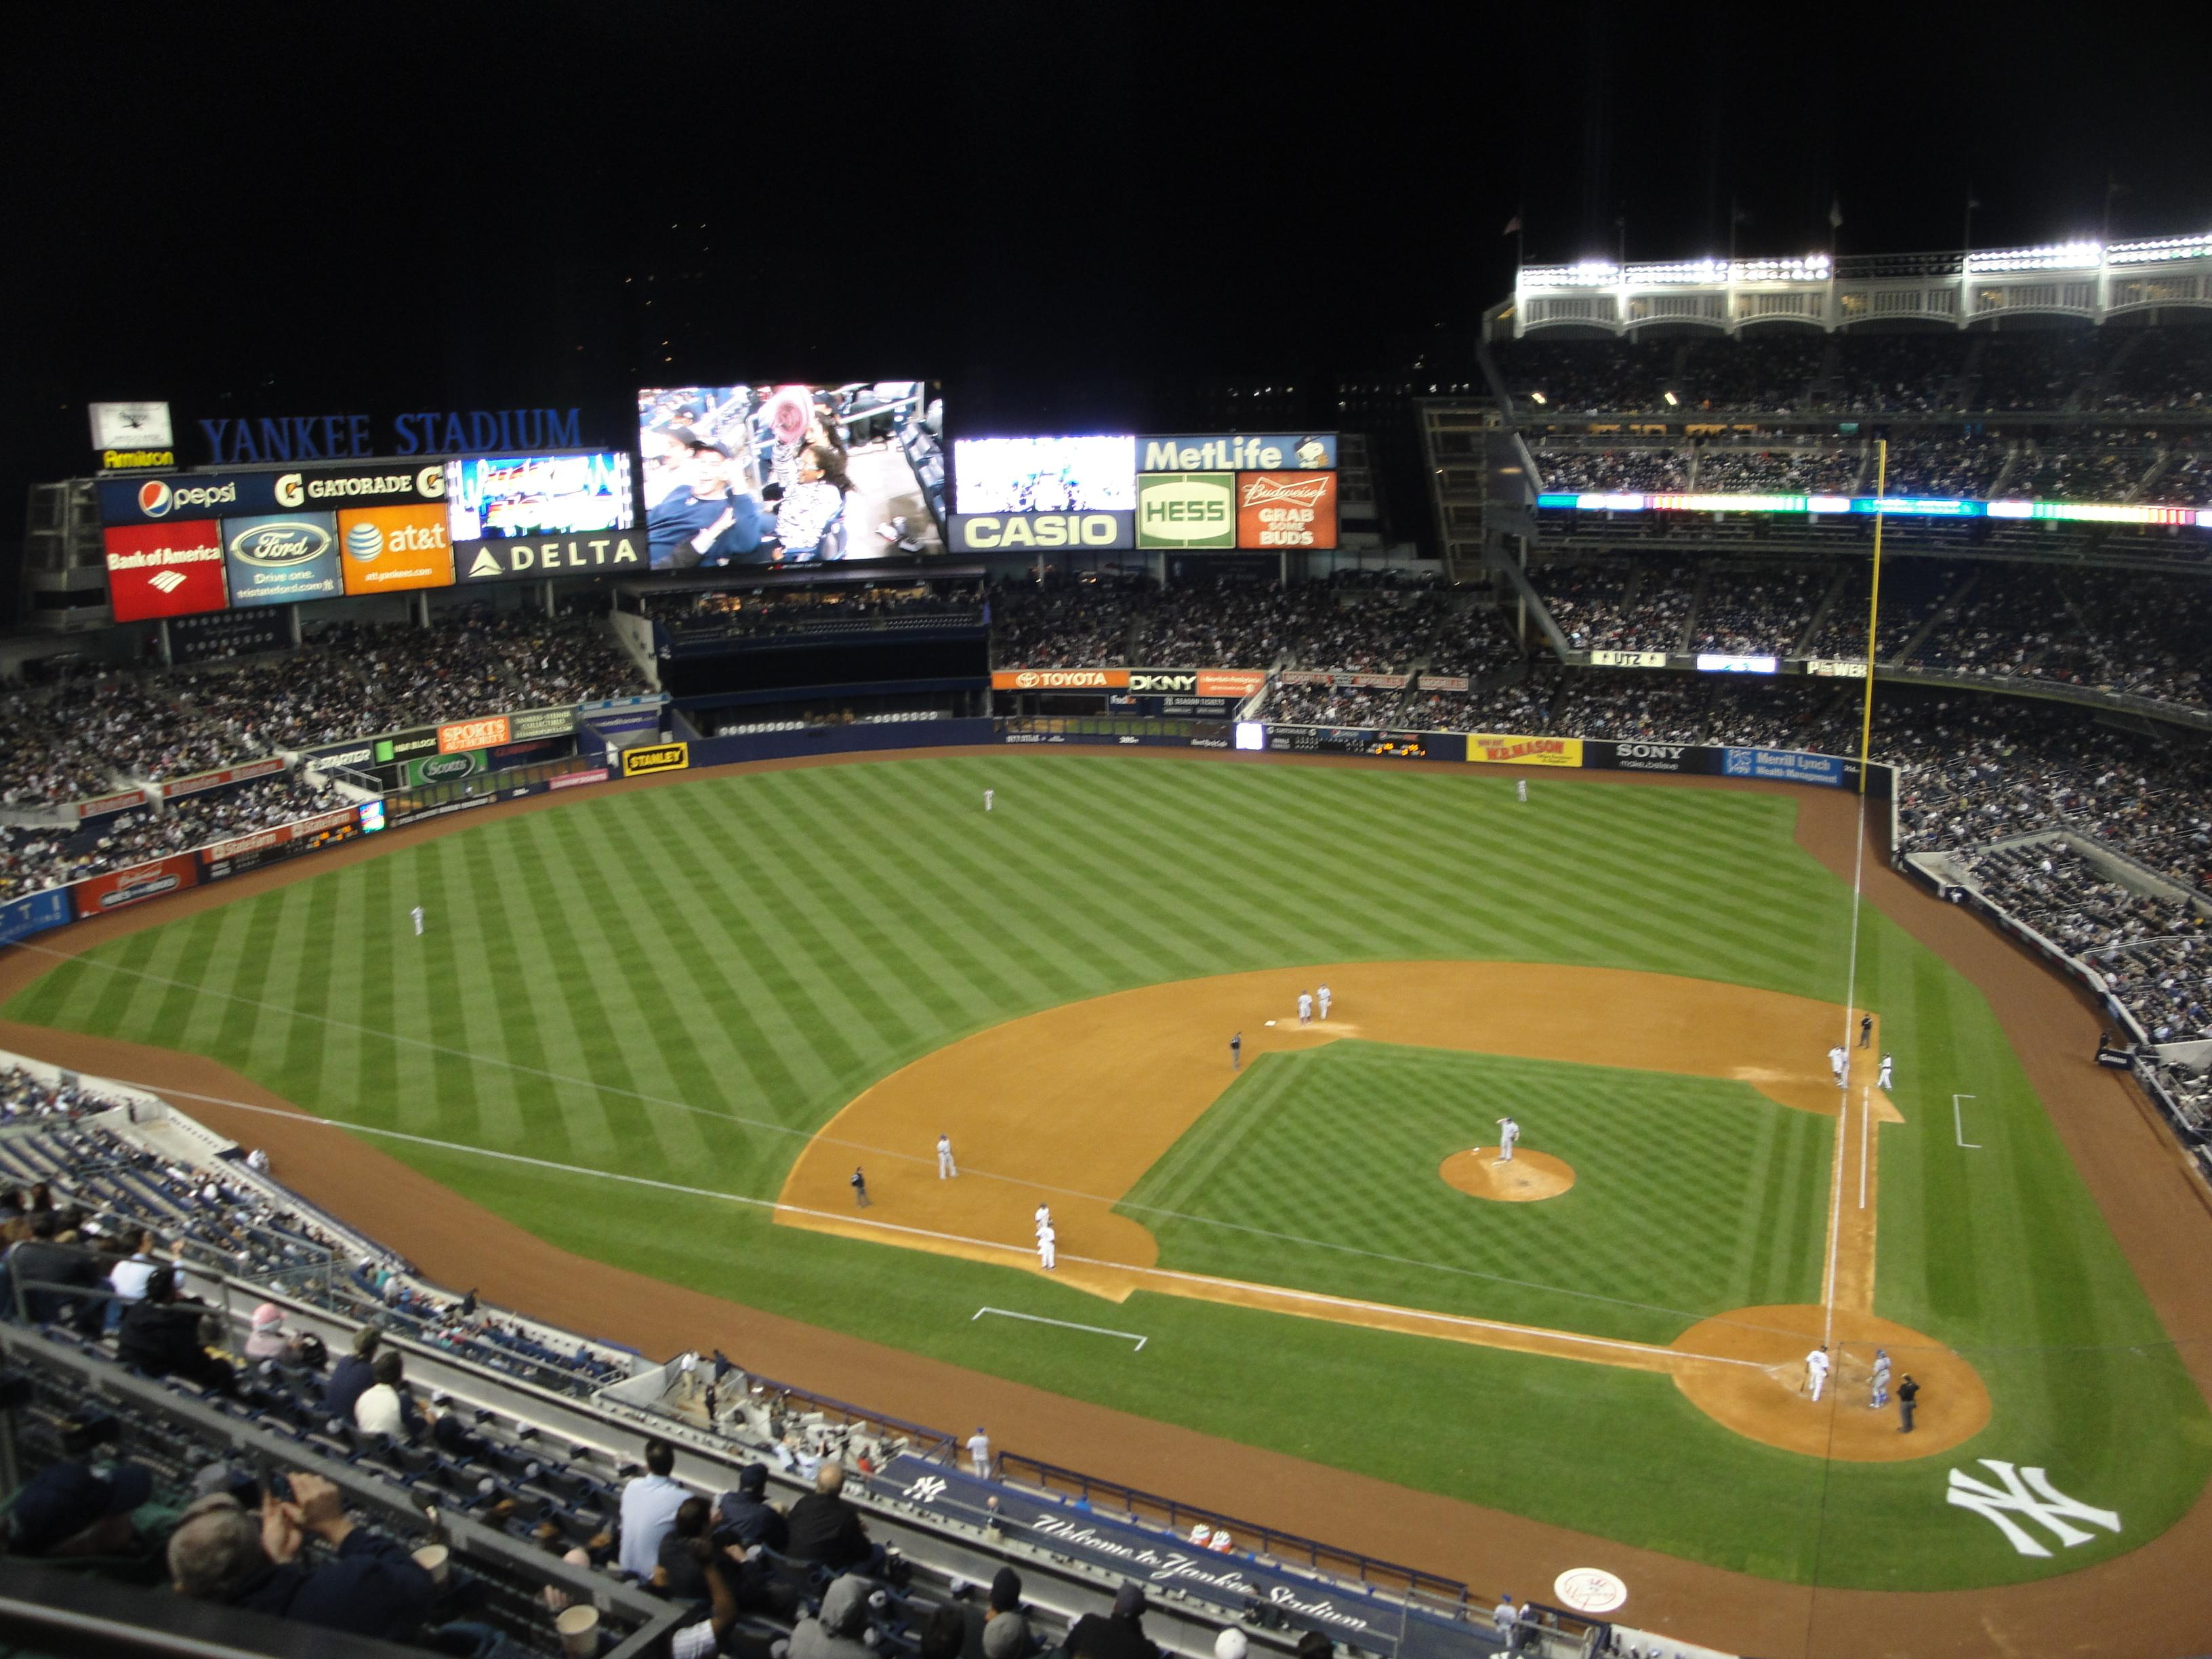 Yankee Stadium Section 422 Row 1 Seat 21